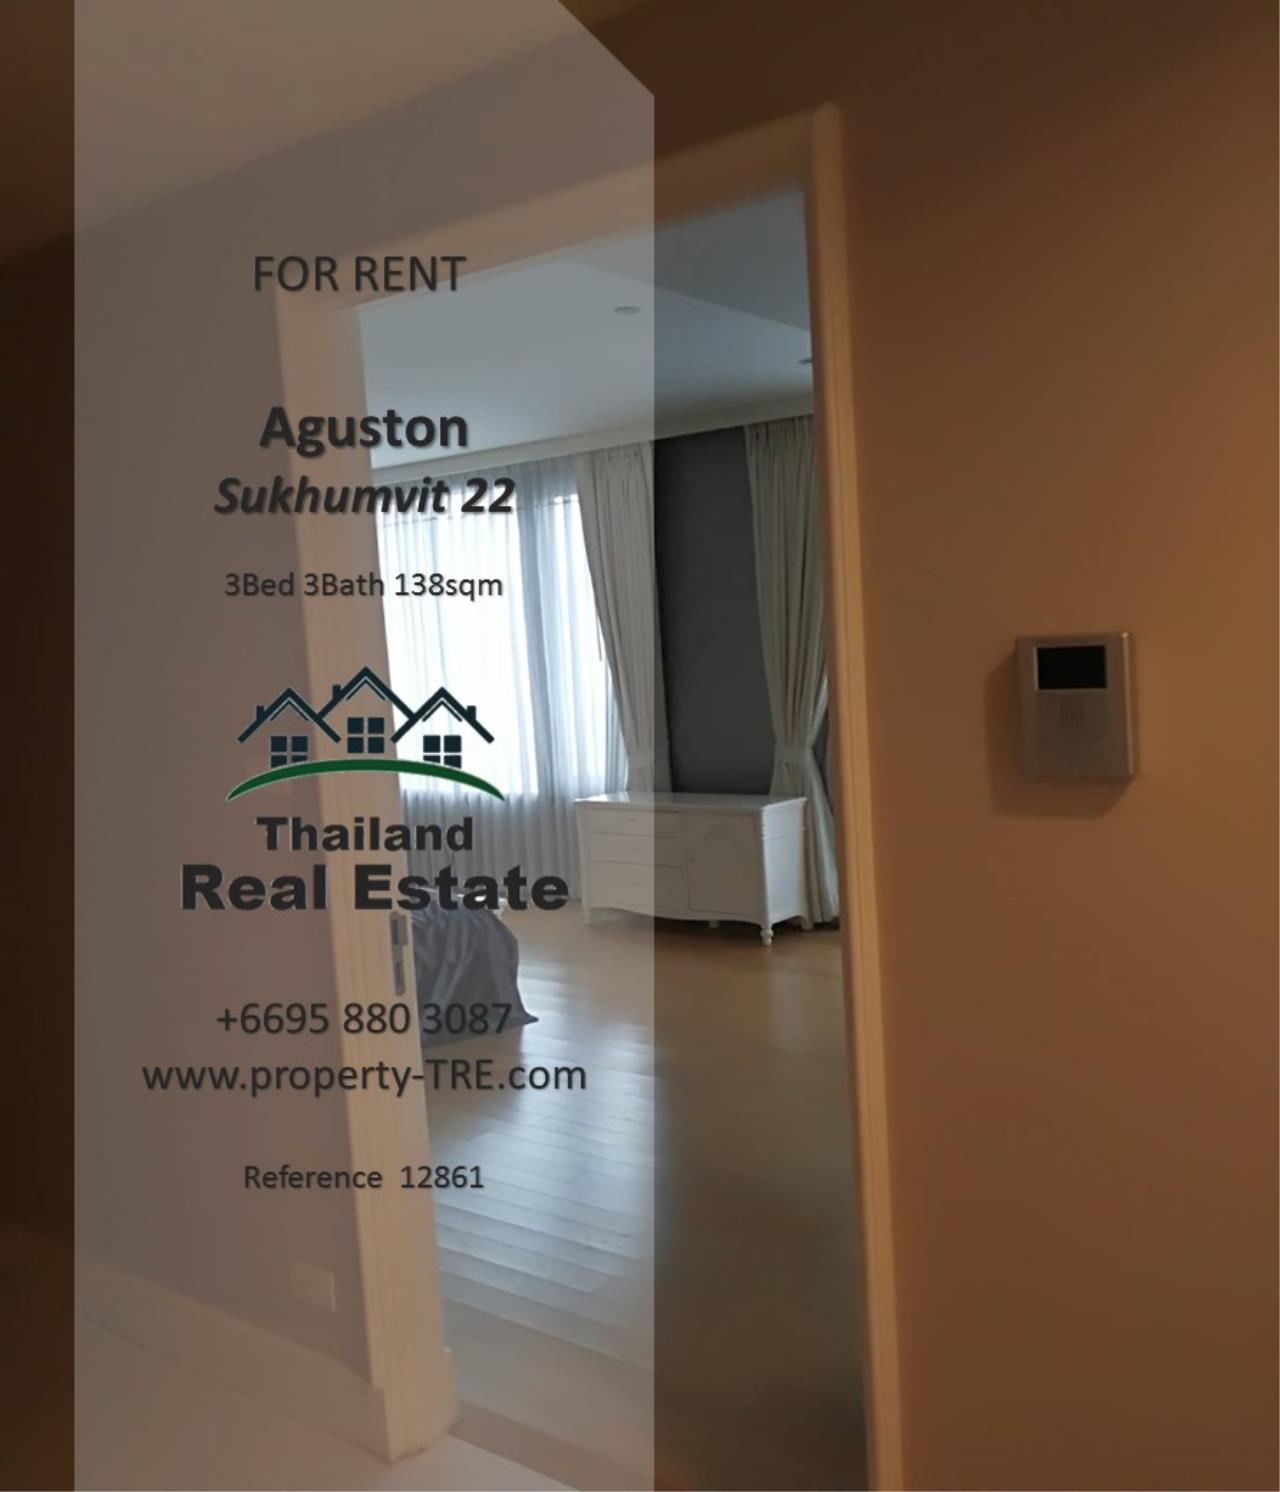 Thailand Real Estate Agency's 3 Bedroom Condo at Aguston Sukhumvit 22 near BTS Phrom Phong(12681) 3